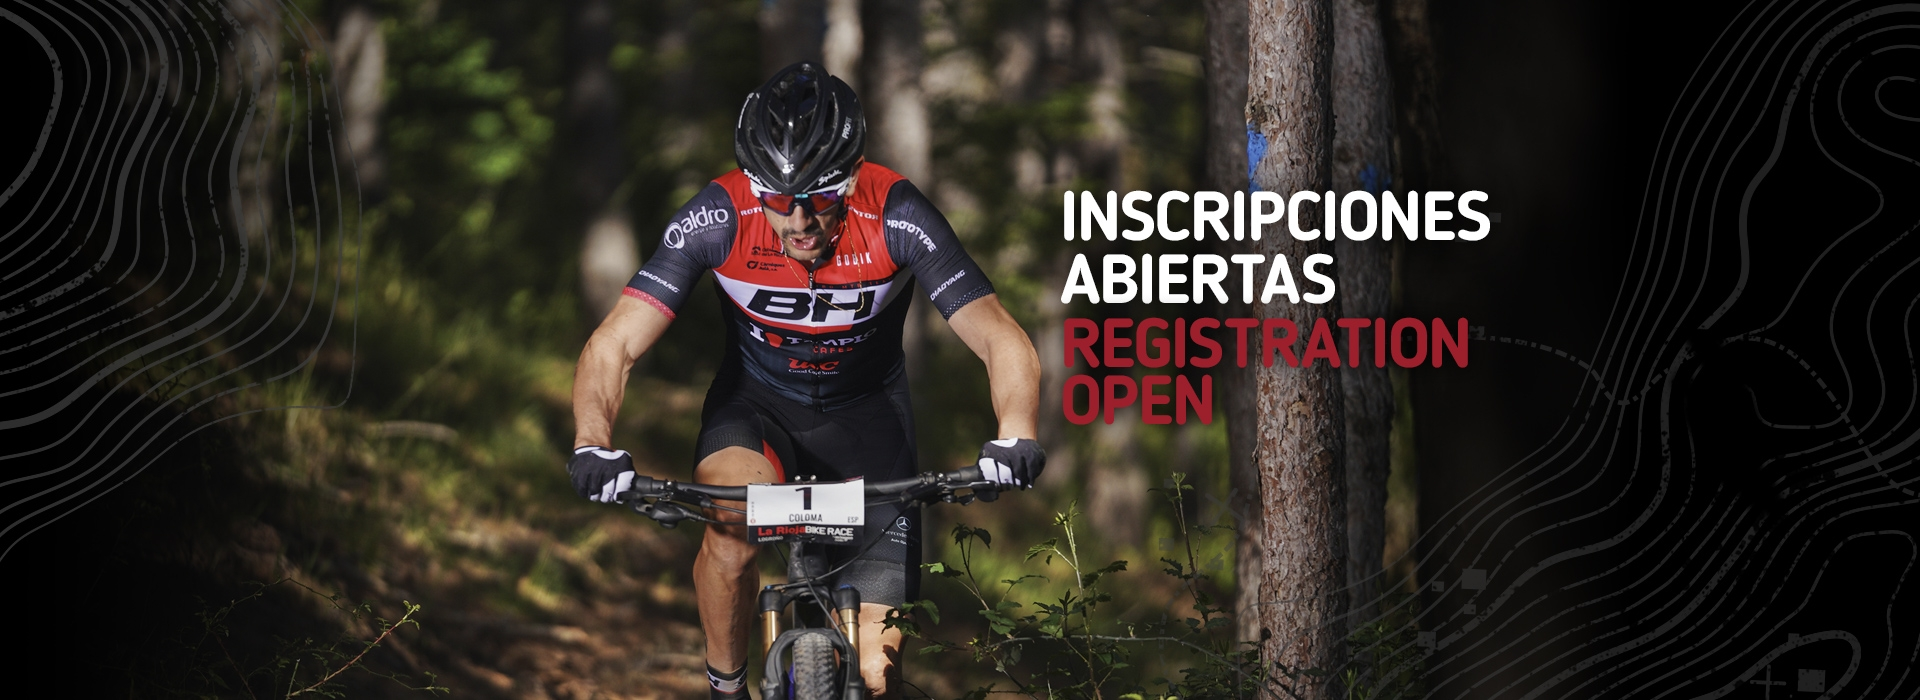 The registering process for La Rioja Bike Race presented by Pirelli 2021 is now open!